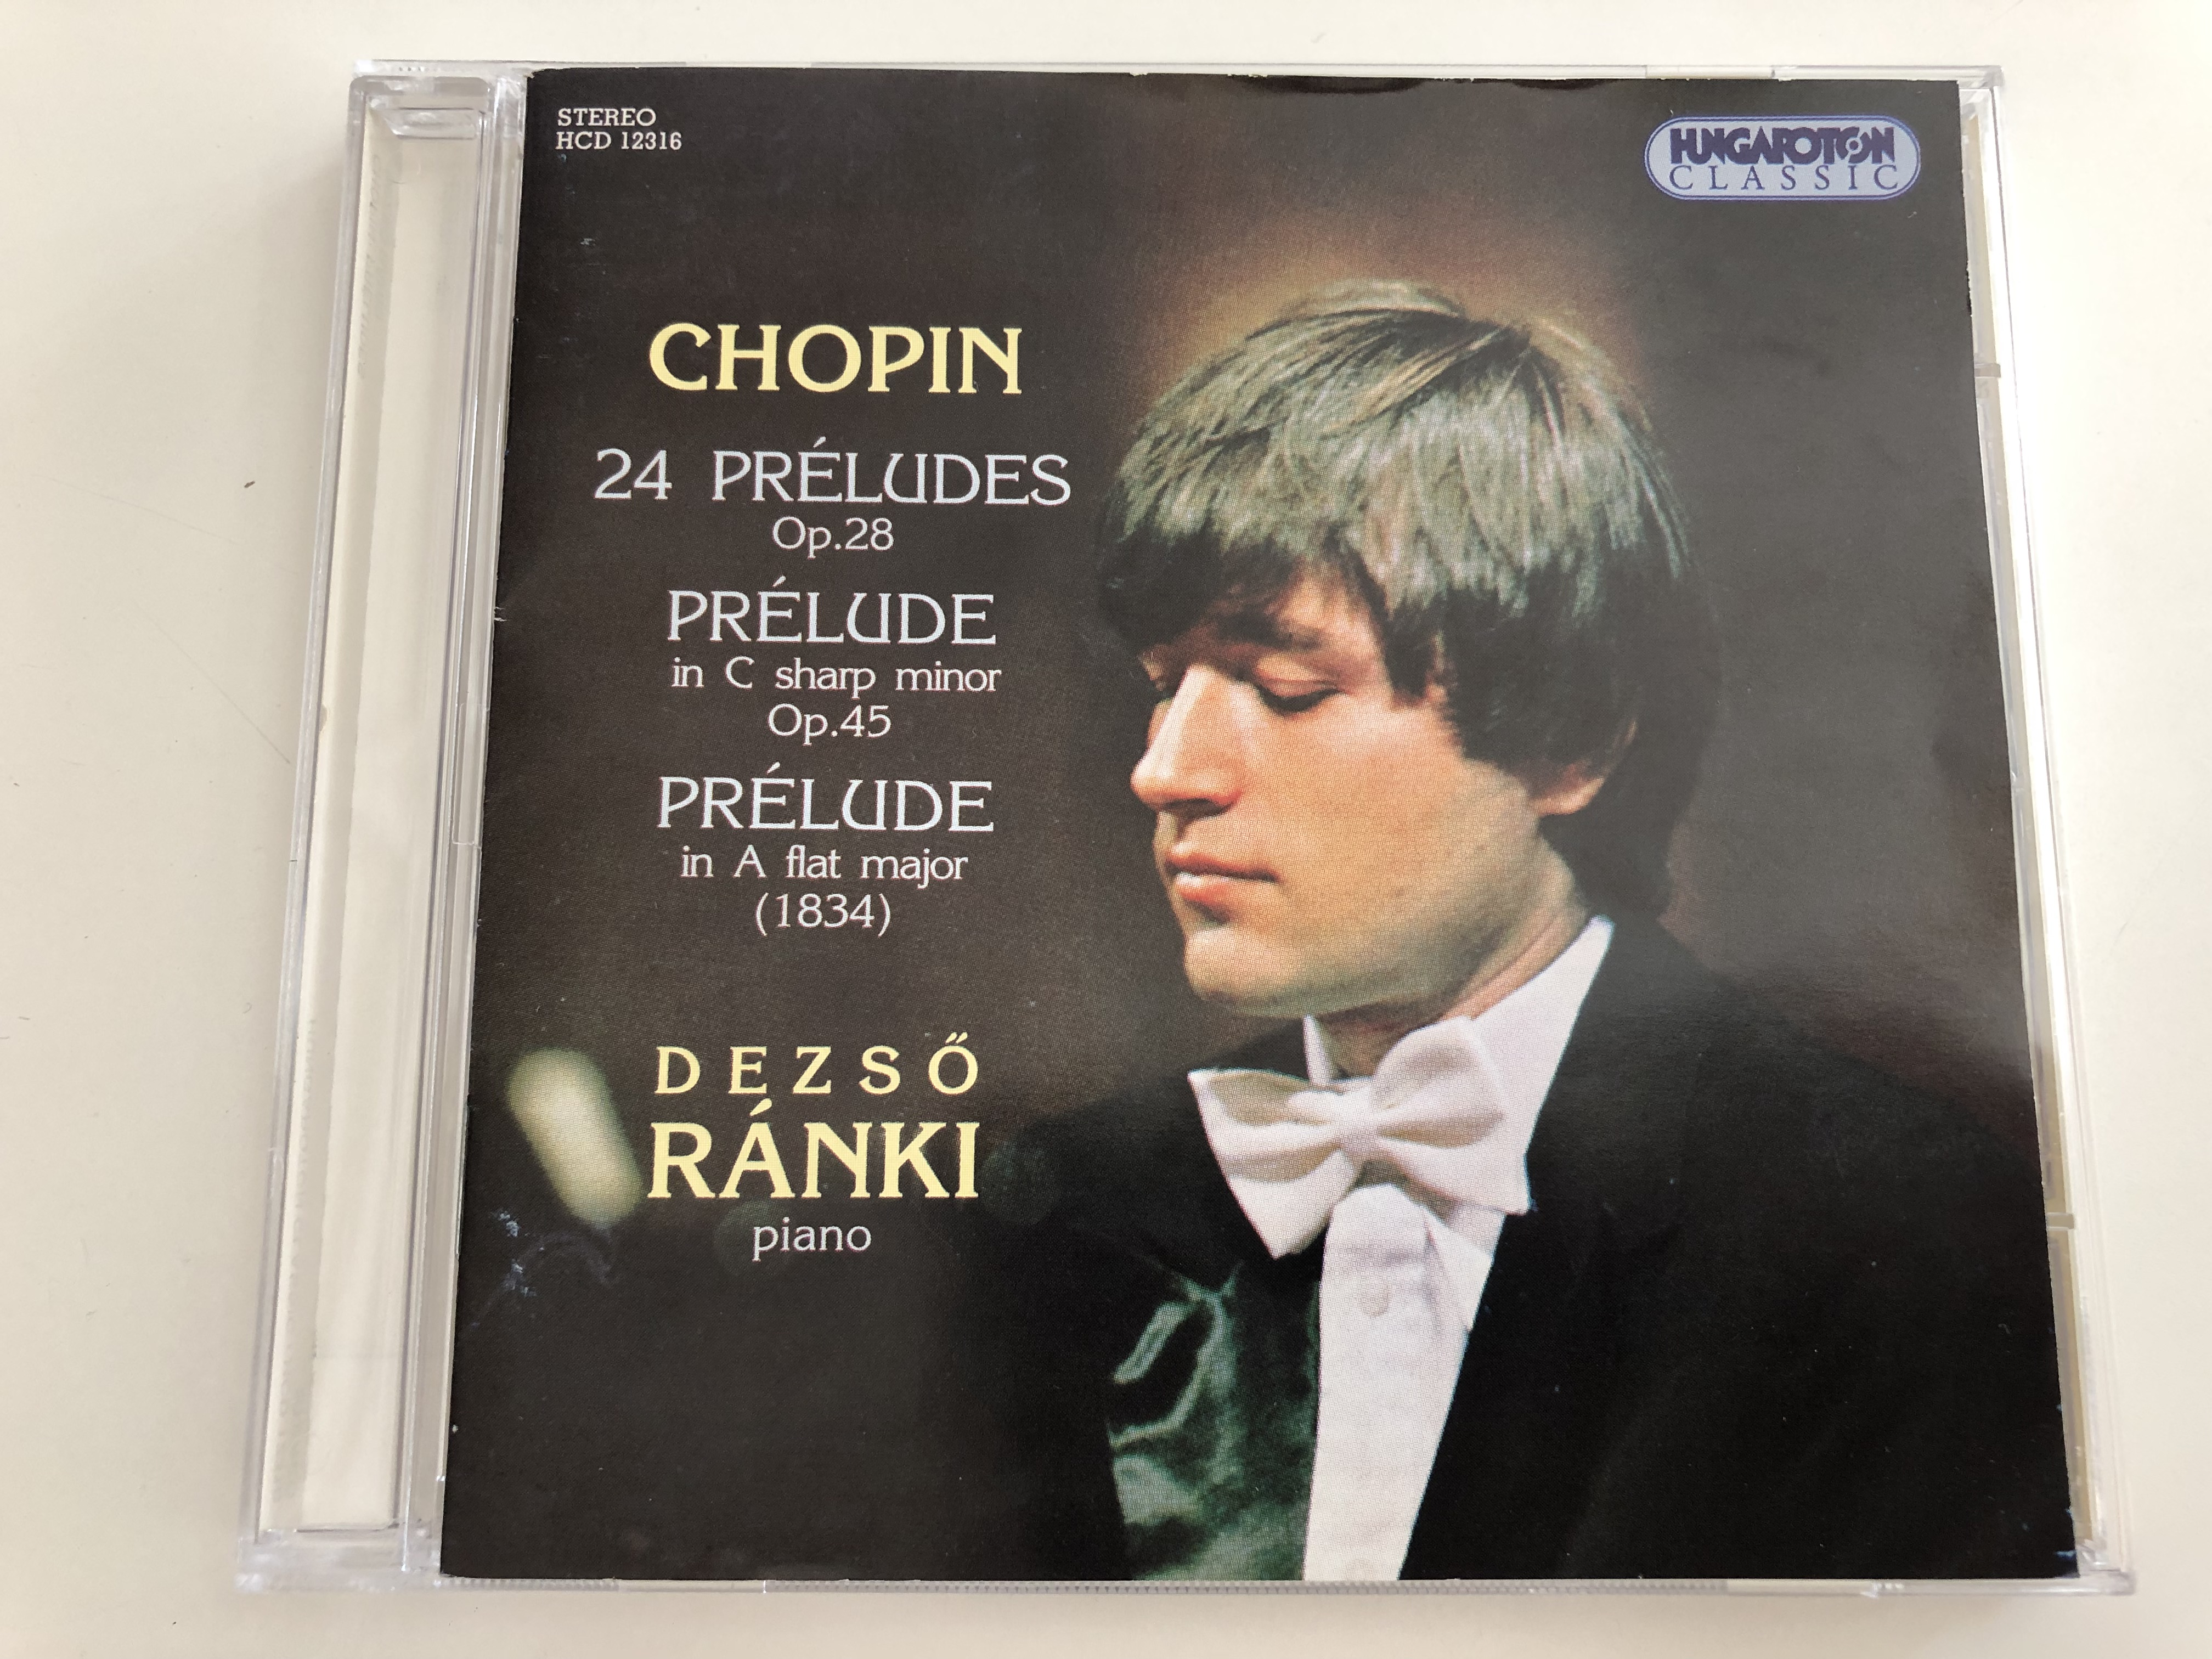 chopin-24-pr-ludes-op.-28-pr-lude-in-c-sharp-minor-op.-45-pr-lude-in-a-flat-major-1834-dezs-r-nki-piano-hungaroton-classic-audio-cd-1996-hcd-12316.jpg